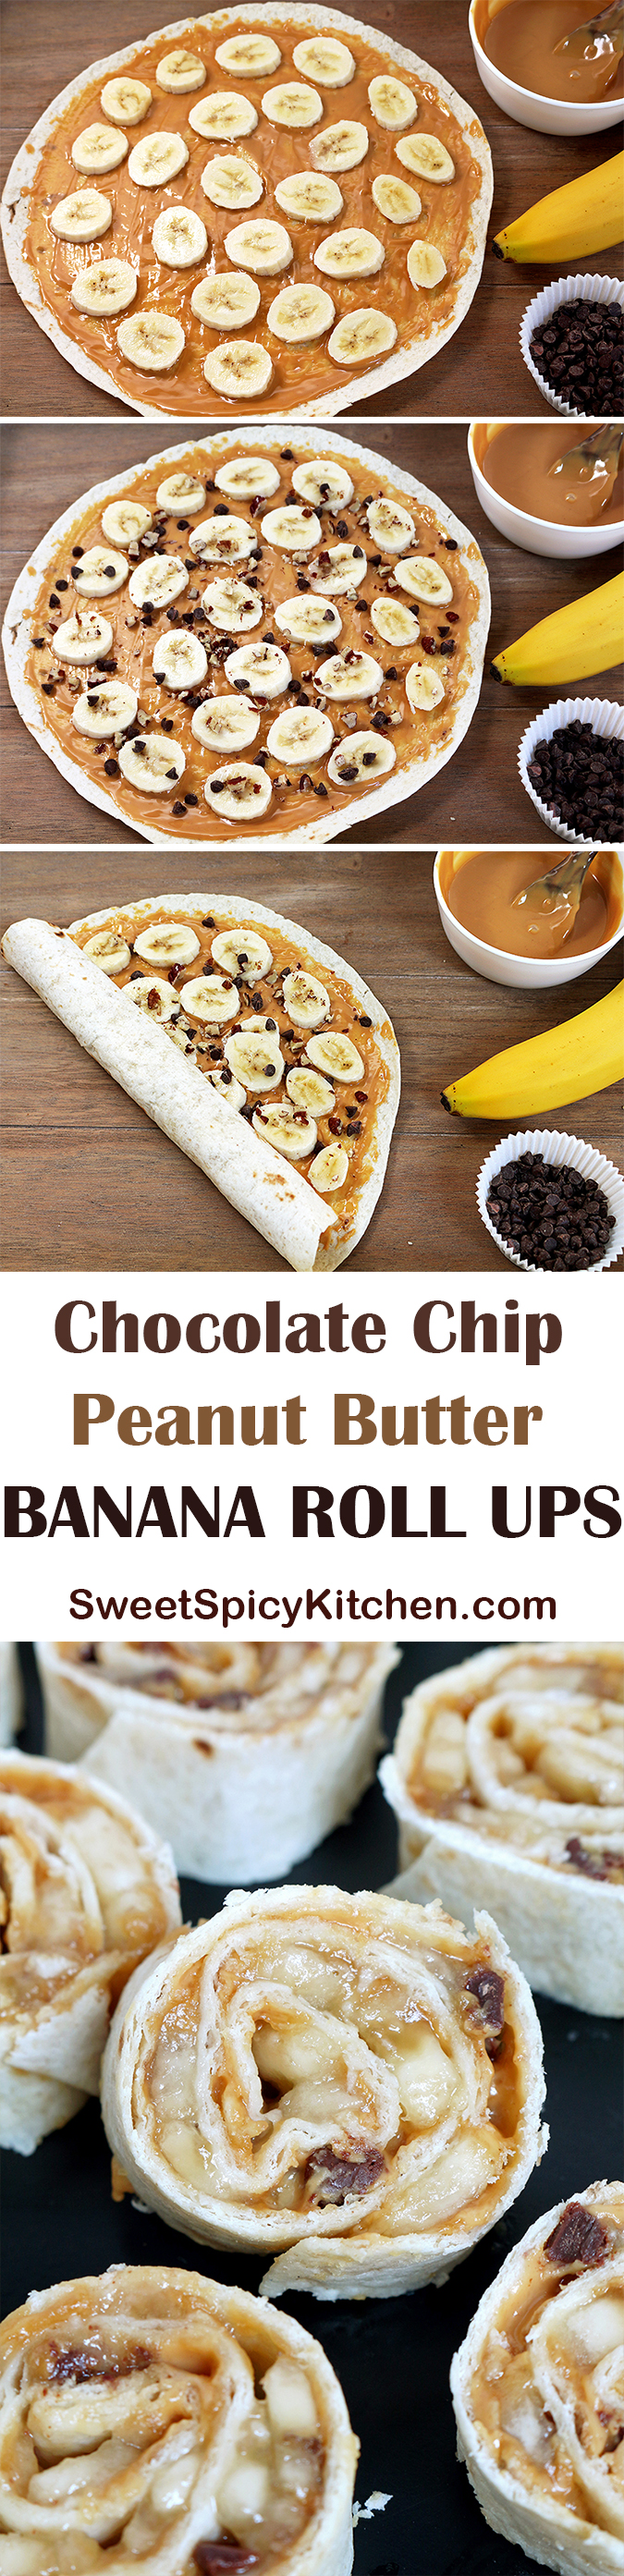 Chocolate Chip Peanut Butter Banana Roll Ups